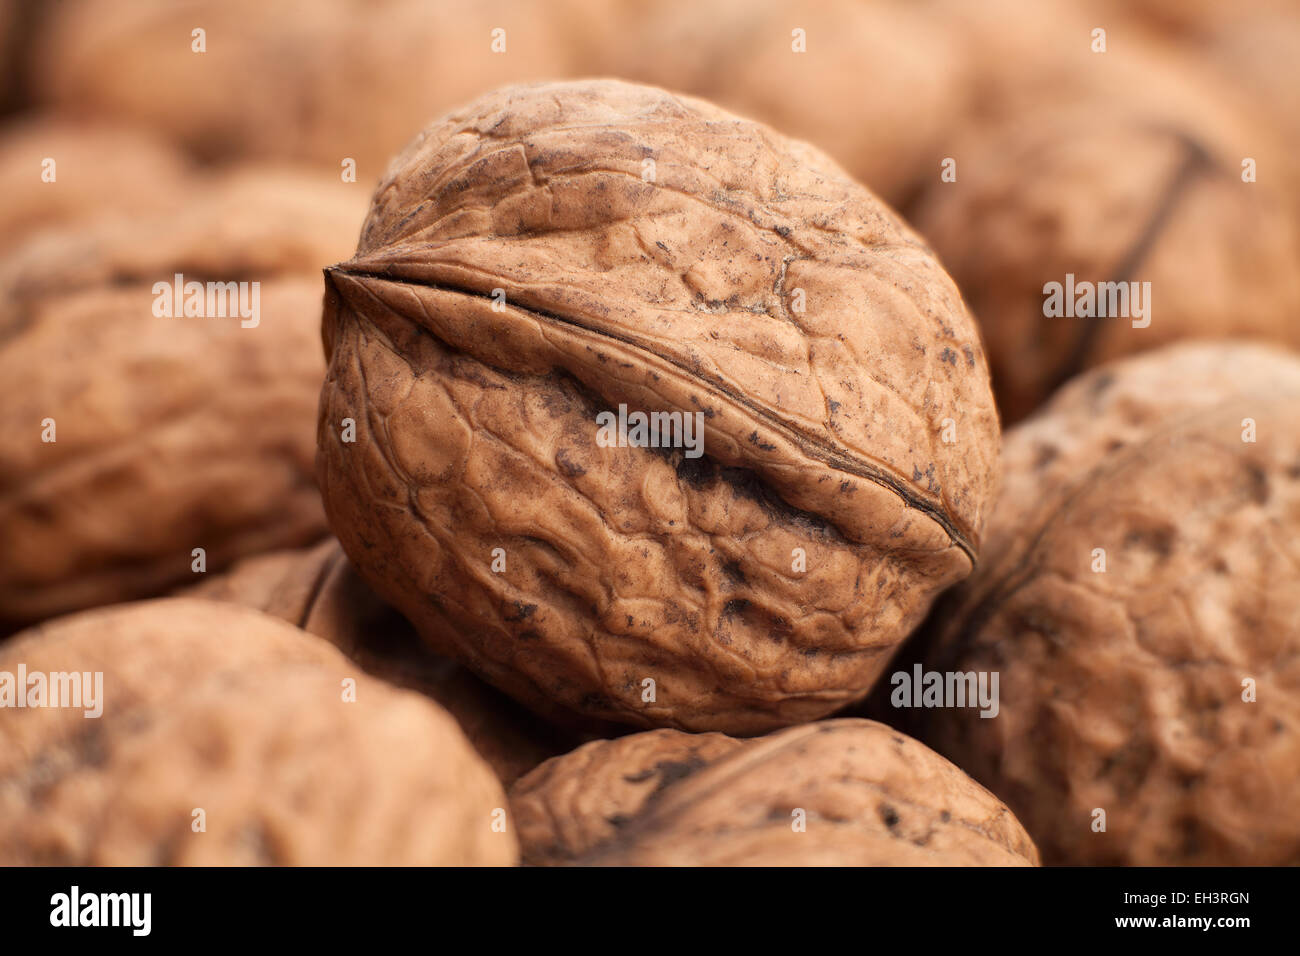 walnuts closeup - Stock Image